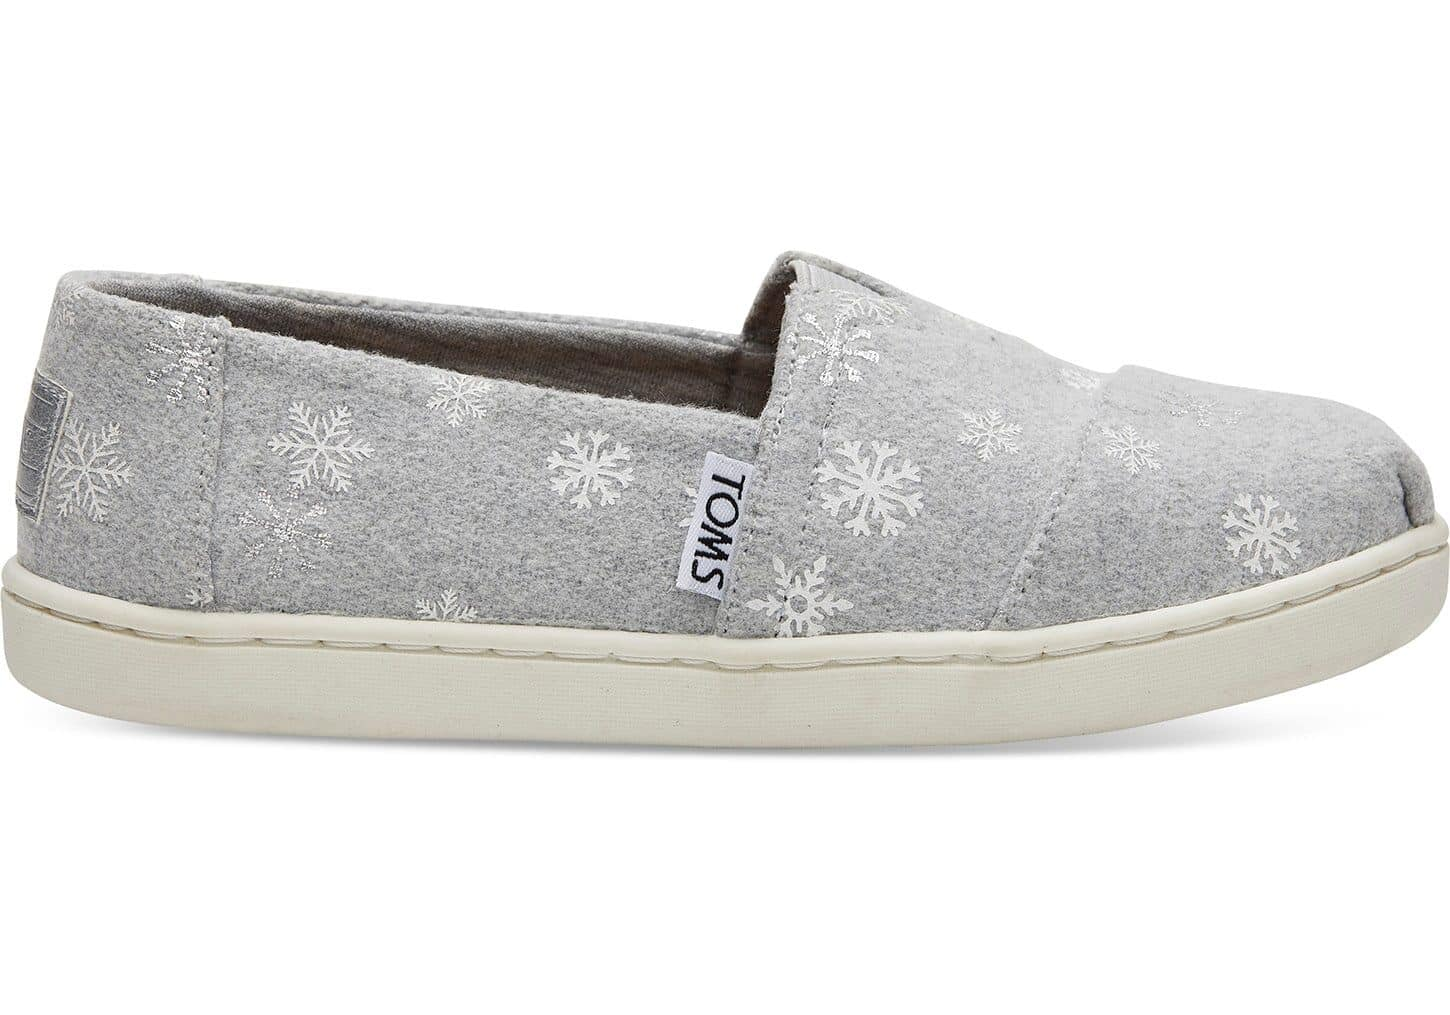 TOMS Shoes Up to 65% Off: Youth Classics (various colors) $10, Women's Carmel Sneakers $20 & More + FS on $60+